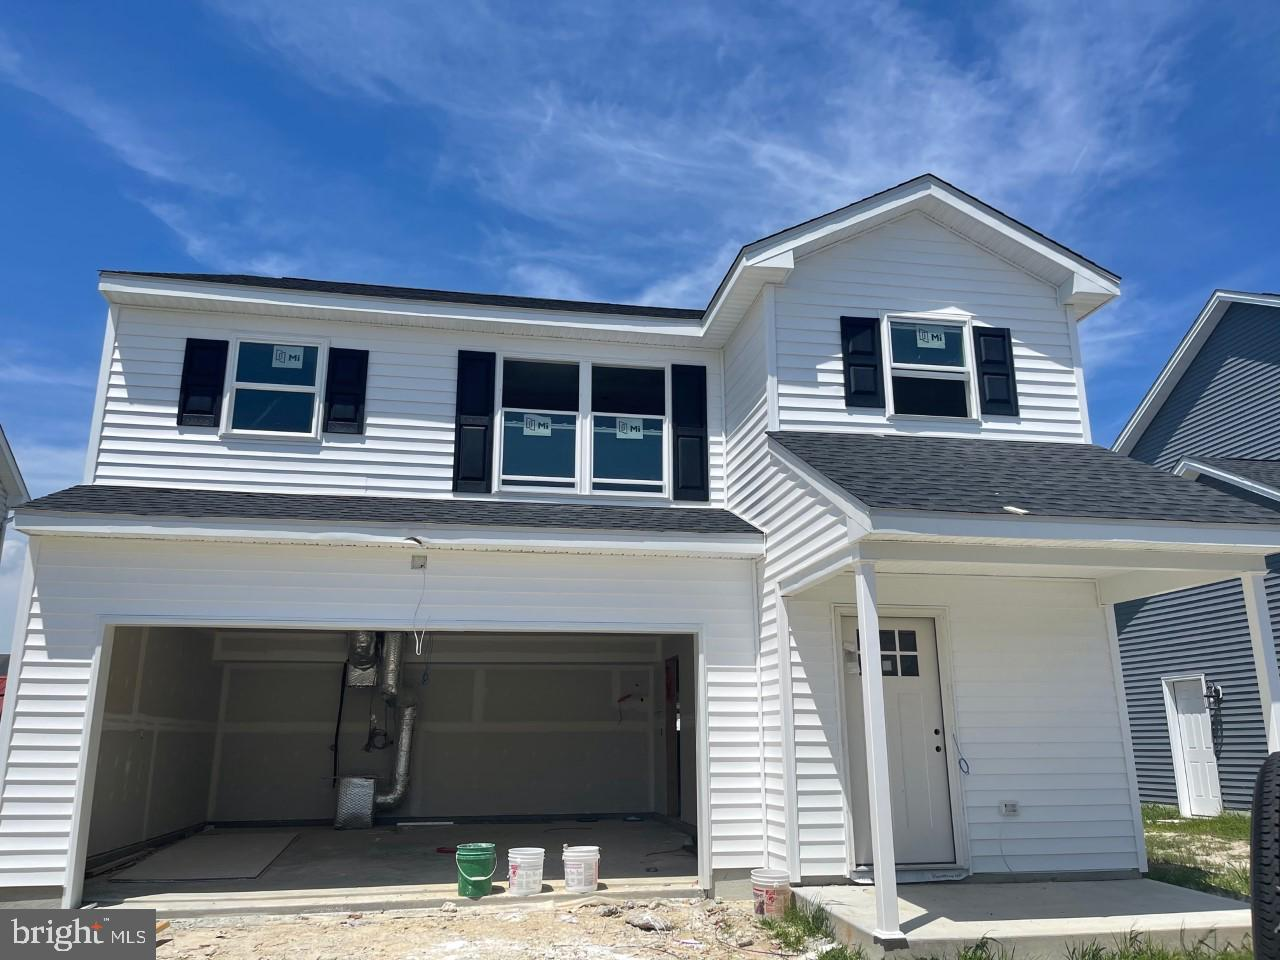 Brand new construction in Delmar School District! This two-story colonial offers 3 bedrooms, 2 full baths and 1 half bath. 2-car attached garage and concrete driveway. Tax assessment for home not yet completed.